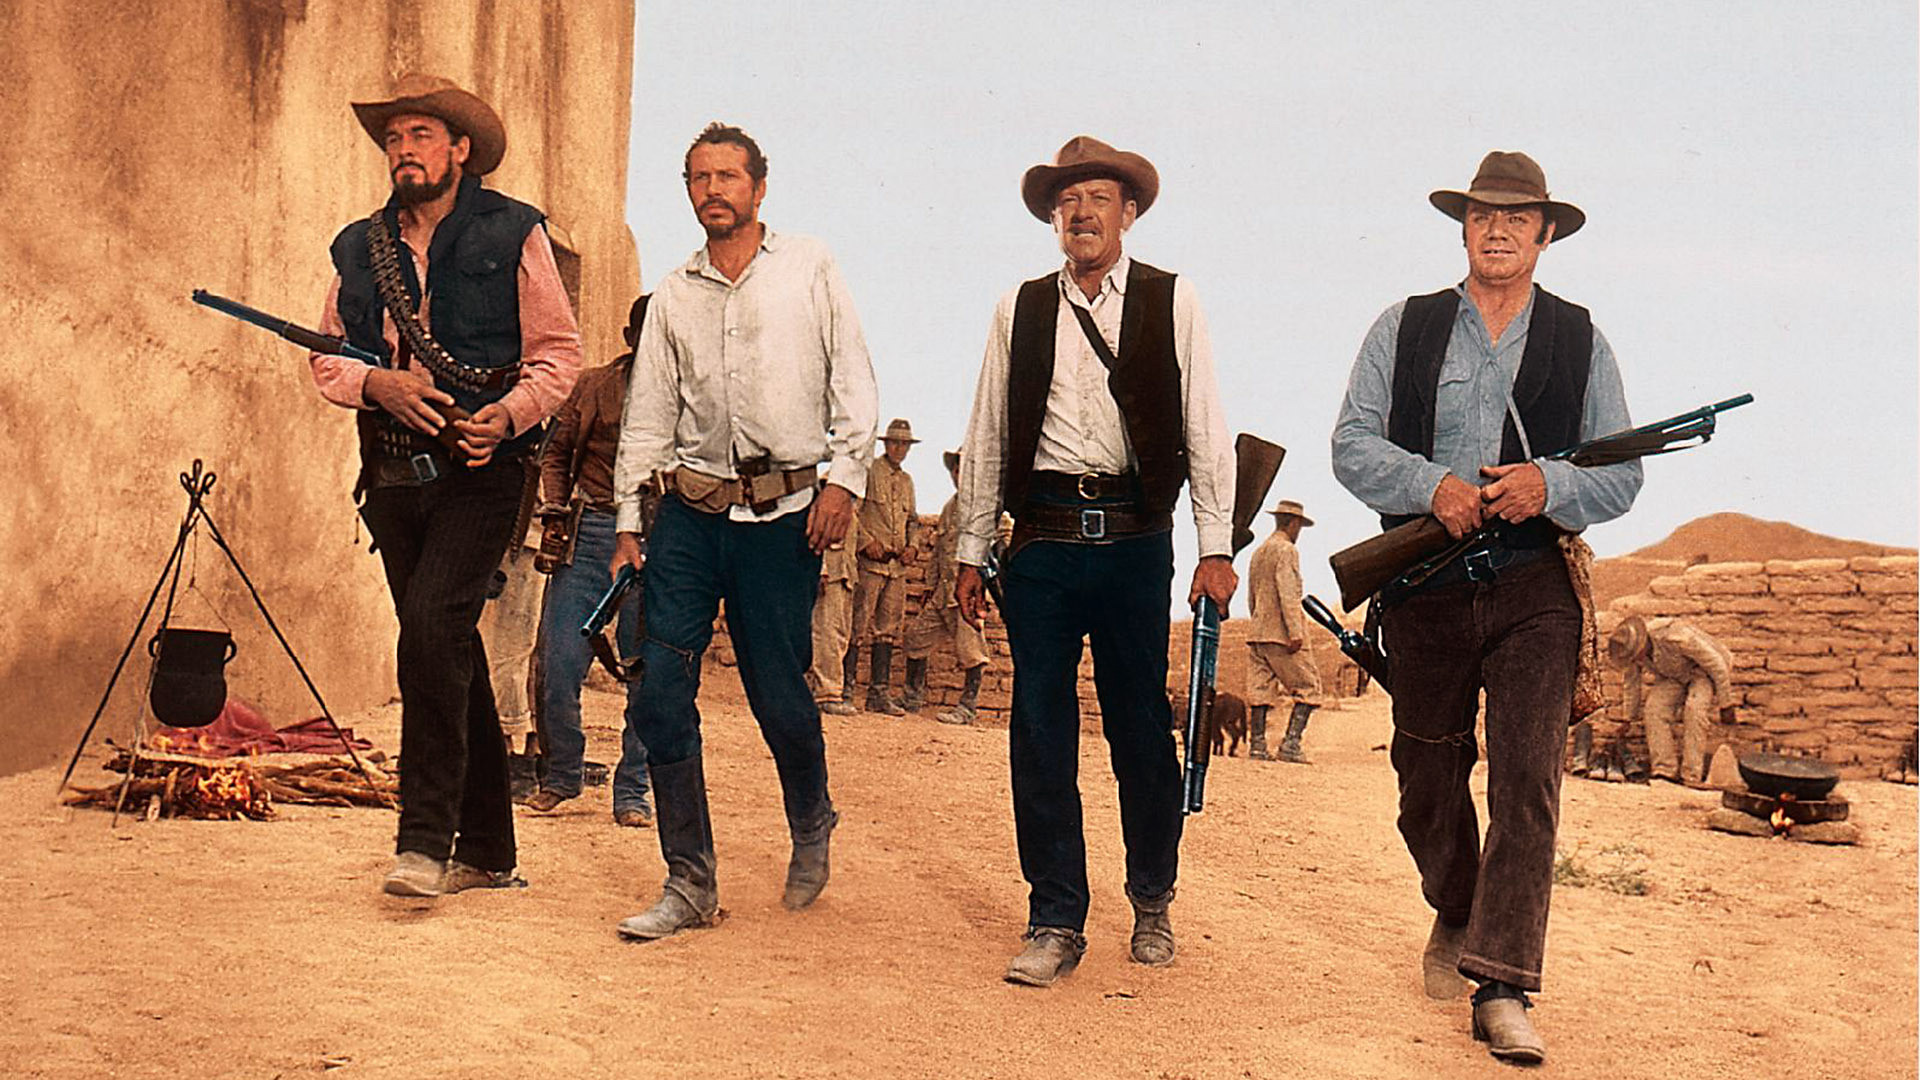 The Wild Bunch (1969)